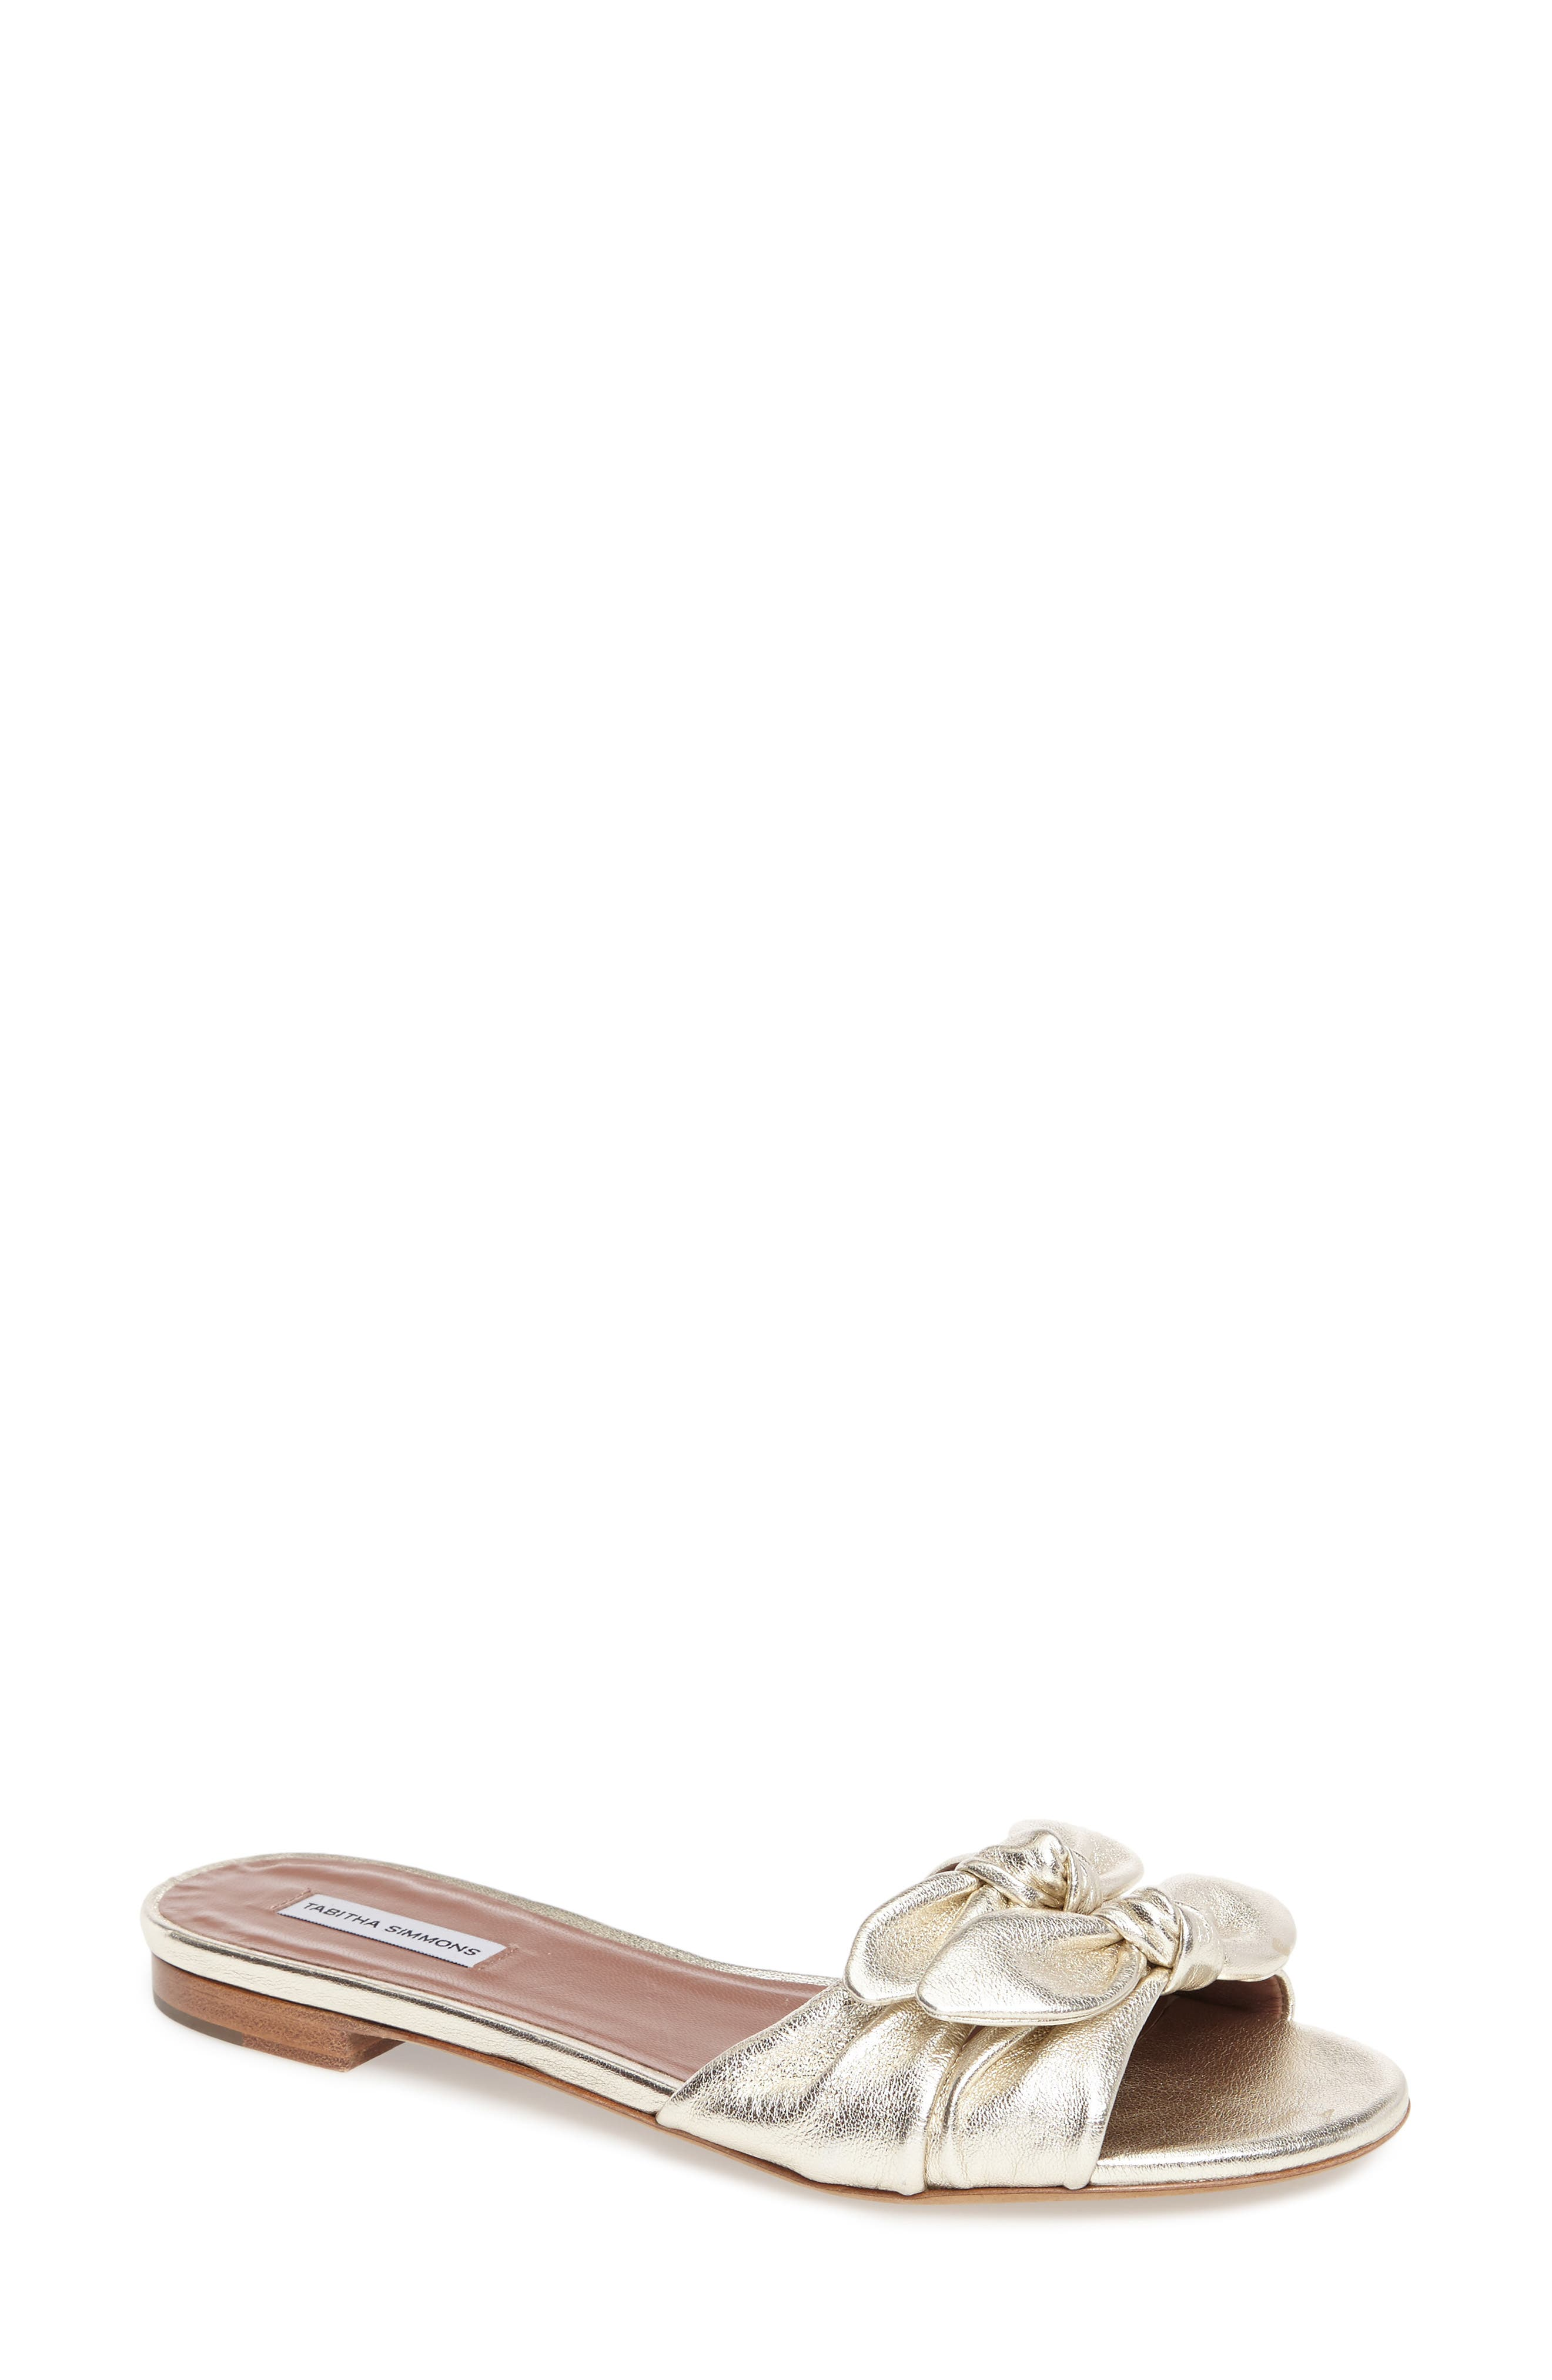 Tabitha Simmons Cleo Knotted Bow Slide Sandal (Women)